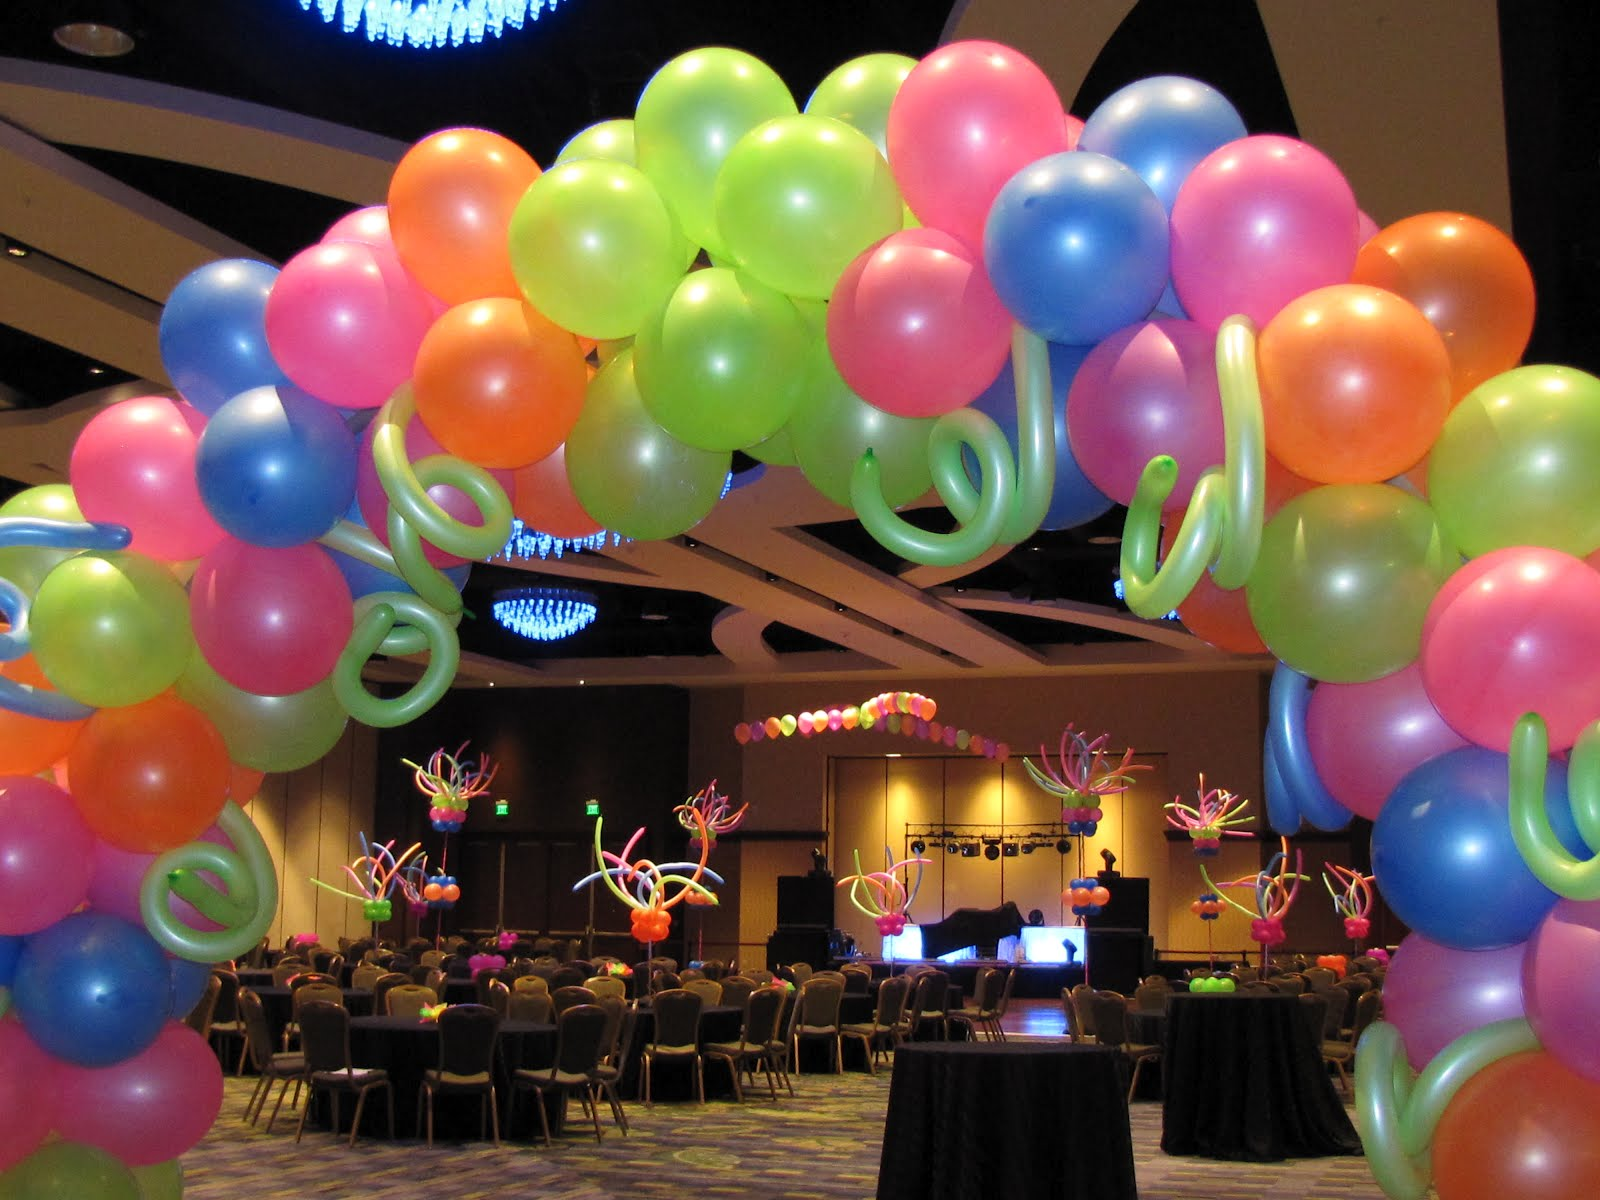 Party people event decorating company april 2012 for Balloon decoration companies